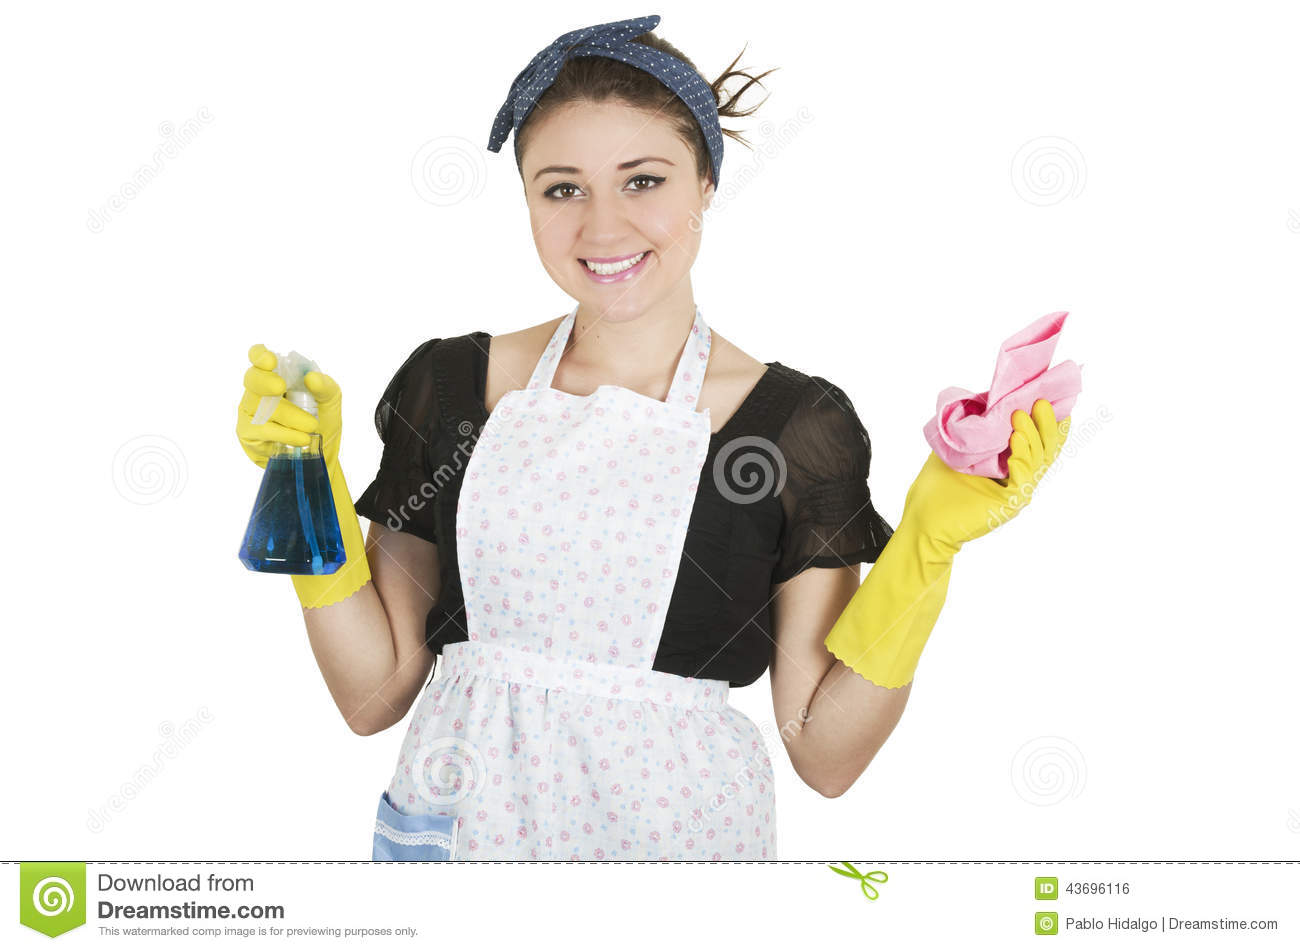 White gloves apron cleaning services - Young Girl Wearing Apron And Holding Cleaning